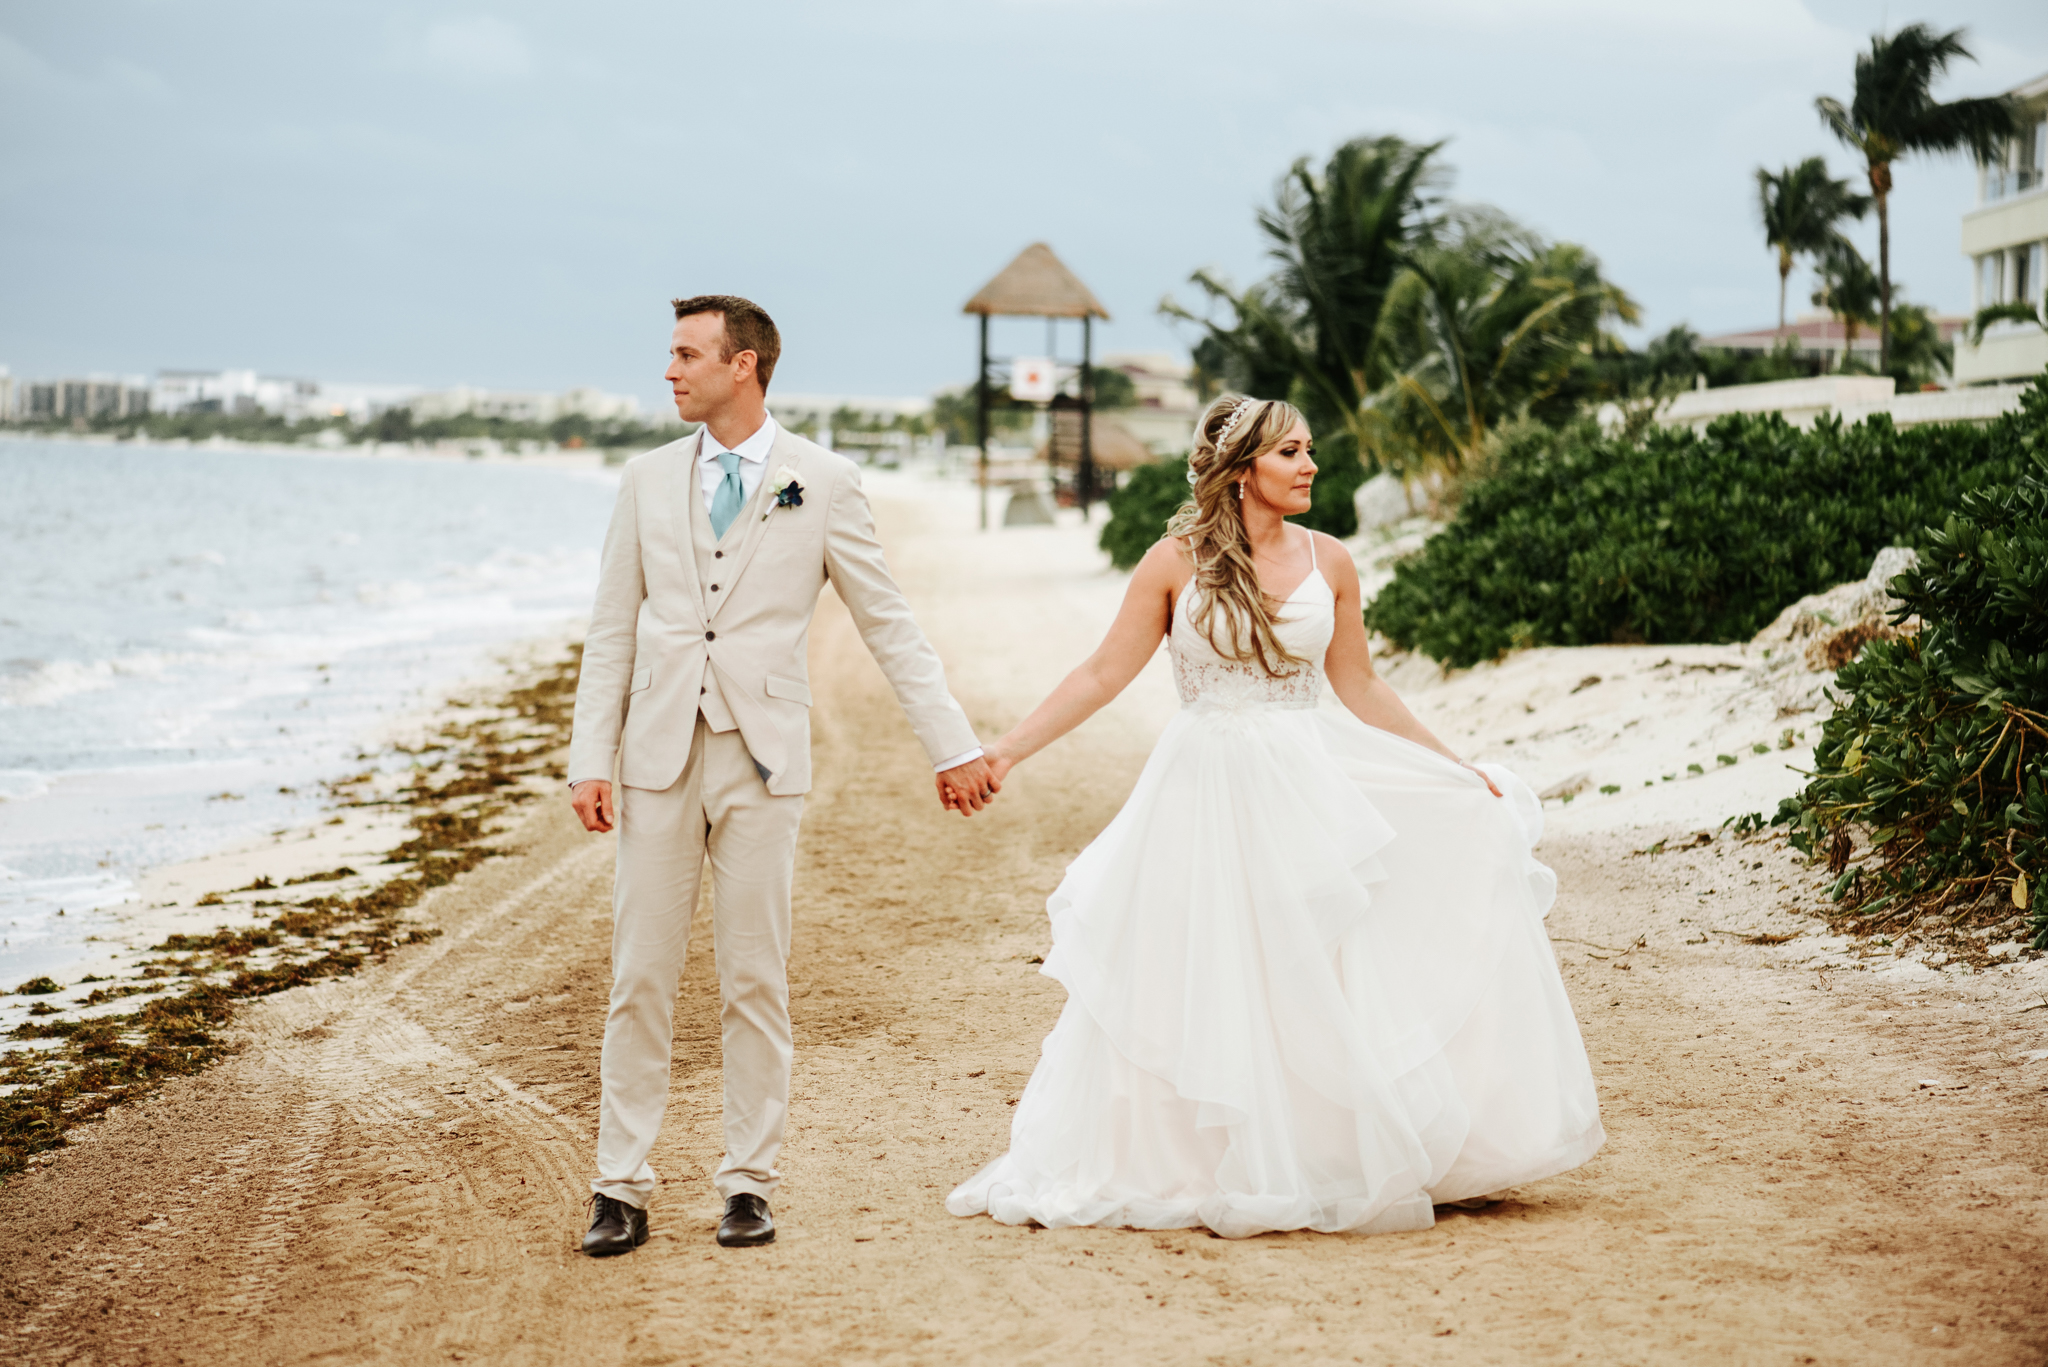 love-and-be-loved-photography-destination-wedding-photographer-cancun-mexico-jessica-jon-image-picture-photo-155.jpg